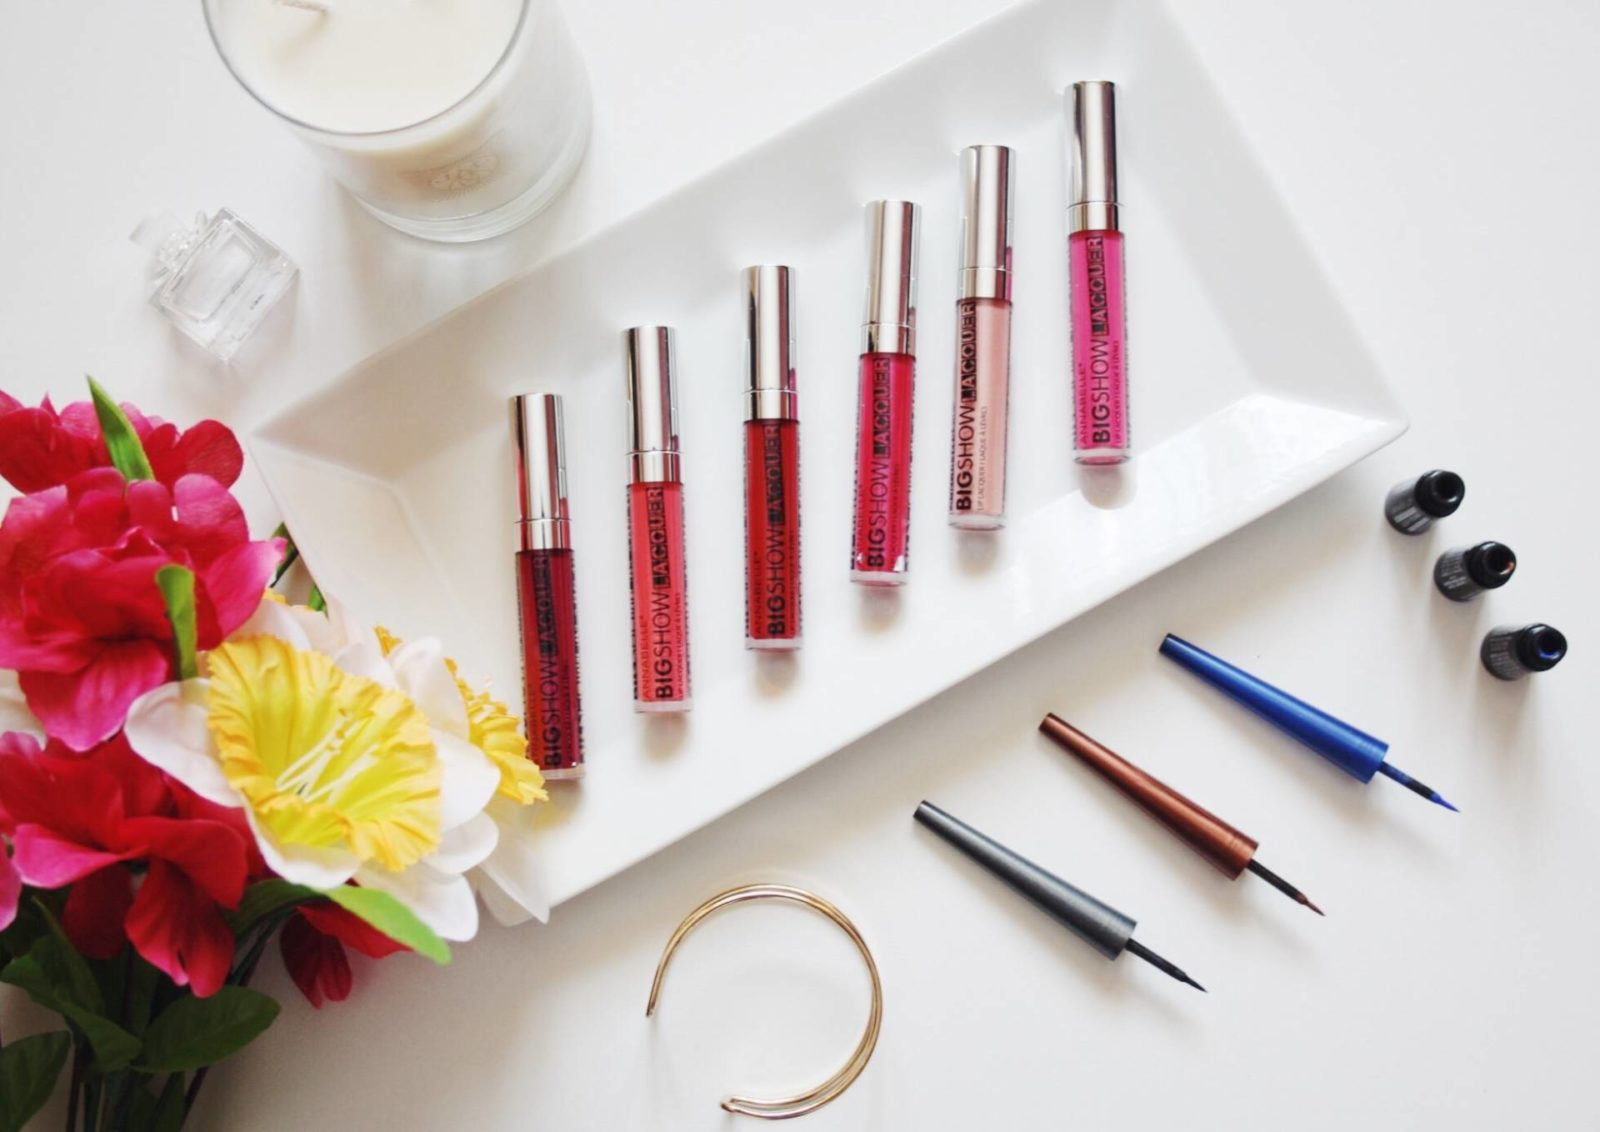 Springtime with Annabelle Cosmetics